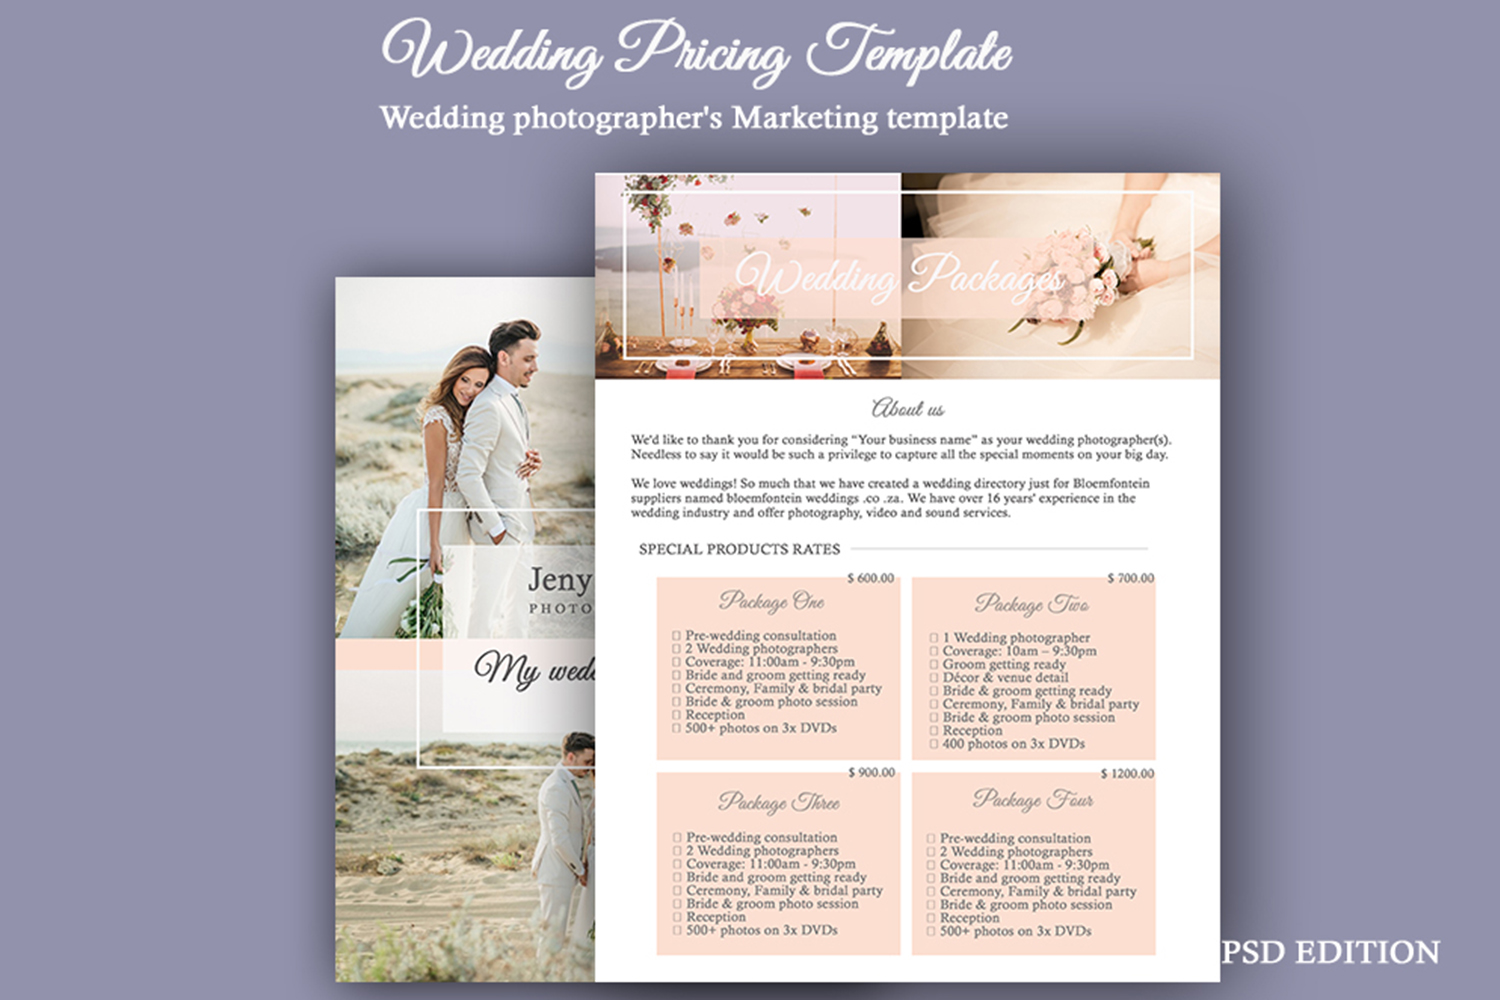 Wedding Pricing Template | Wedding PSD Photography Template example image 2